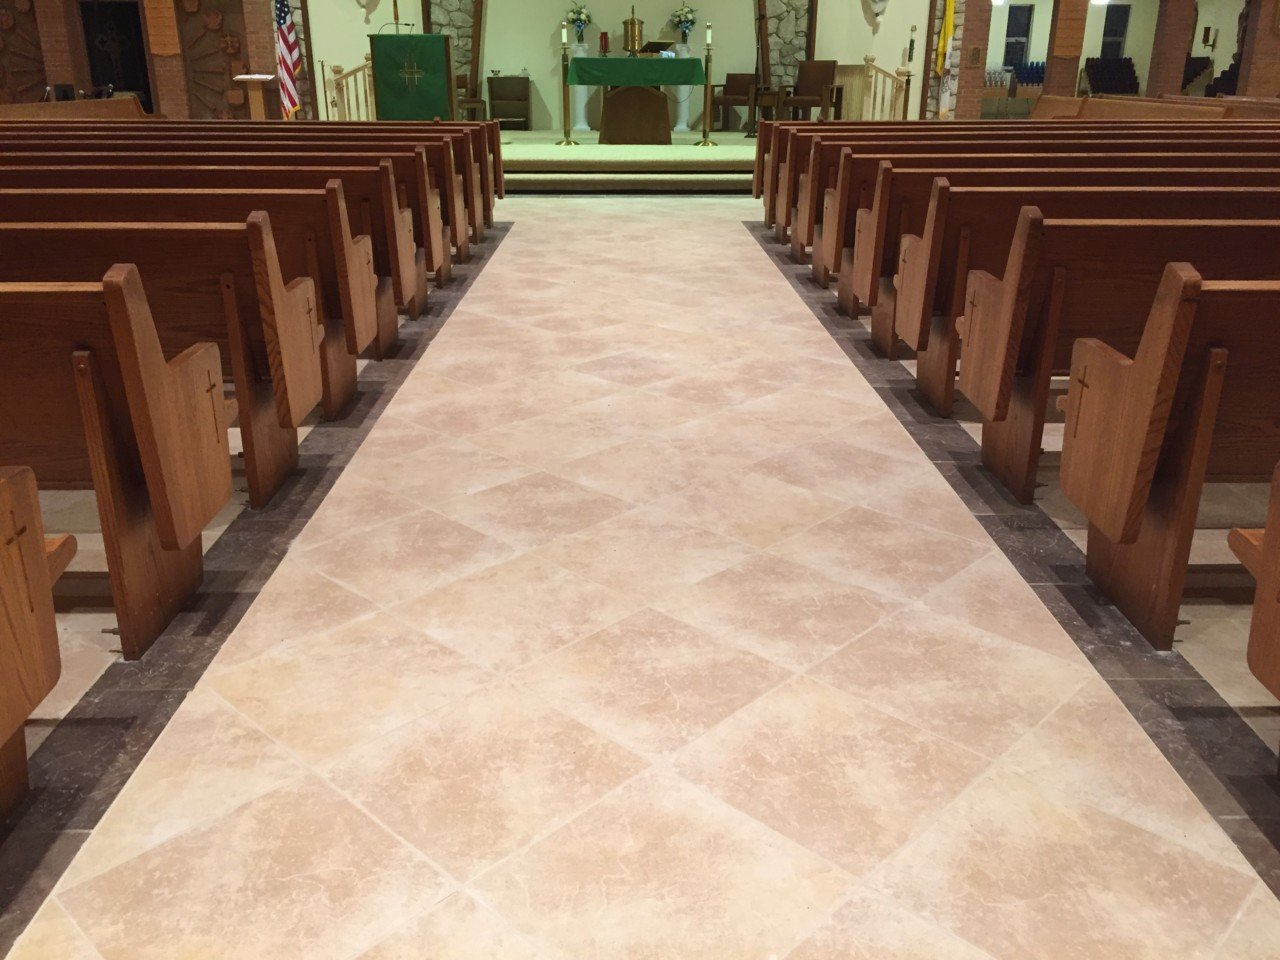 Church tile marble floors artech church interiors necessary for a successful church floor installation and we are able to not only install a new porcelain tile floor but move and re install the pews dailygadgetfo Gallery